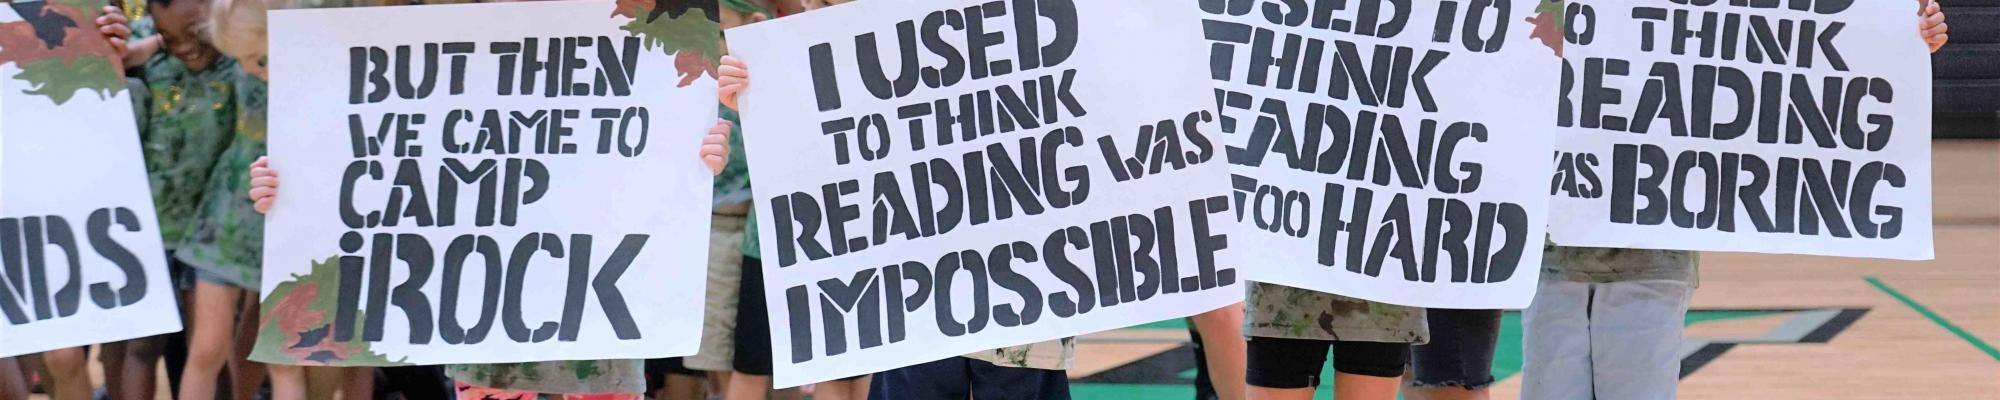 camp irock campers holding signs that say i used to think reading was impossible, but then i came to camp irock